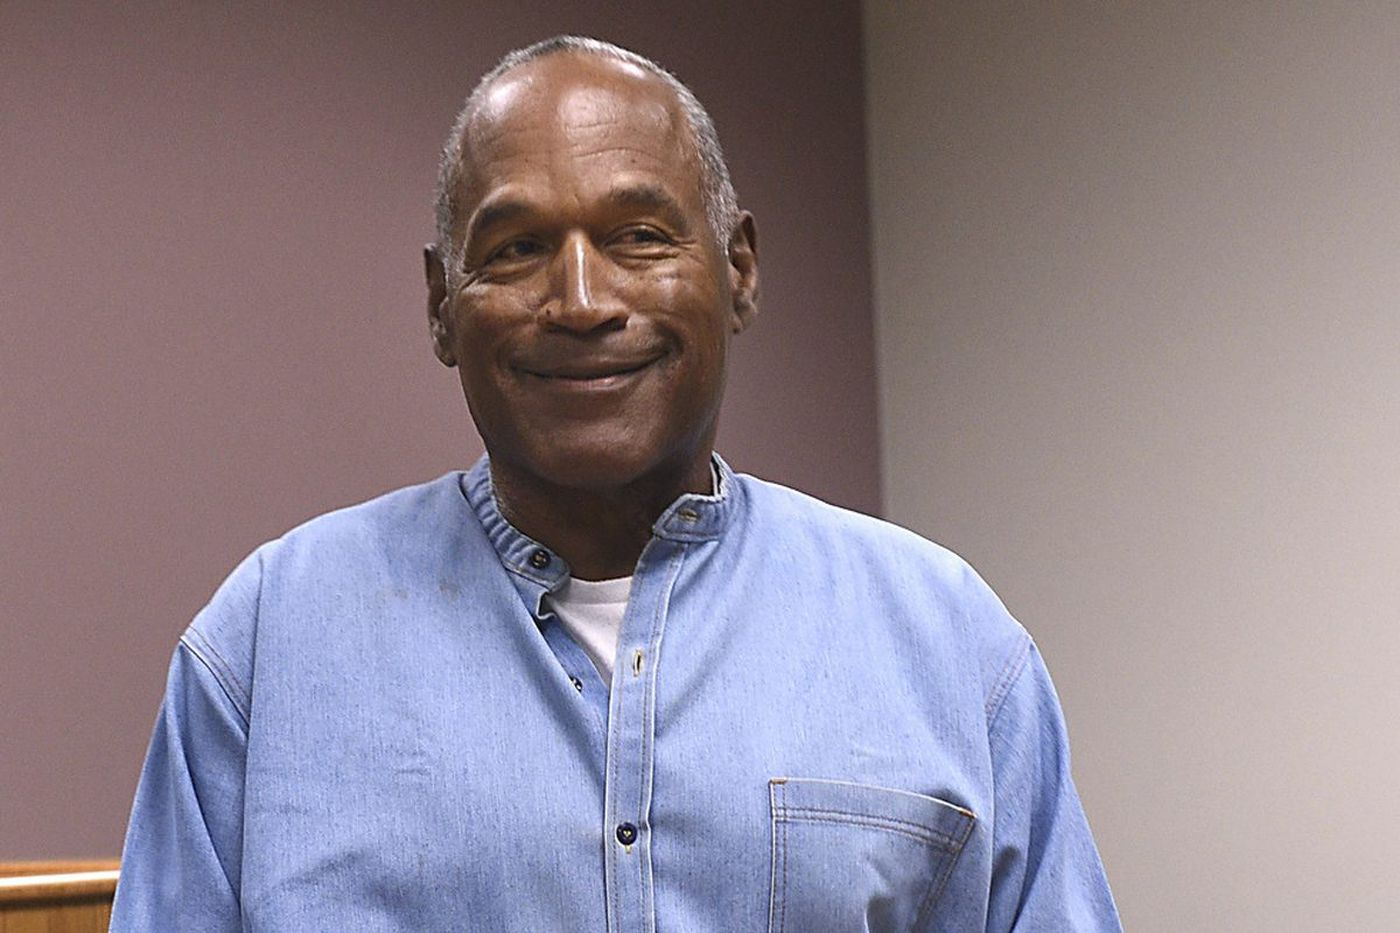 O.J. Simpson to be released from prison: 'I could have been a better Christian'